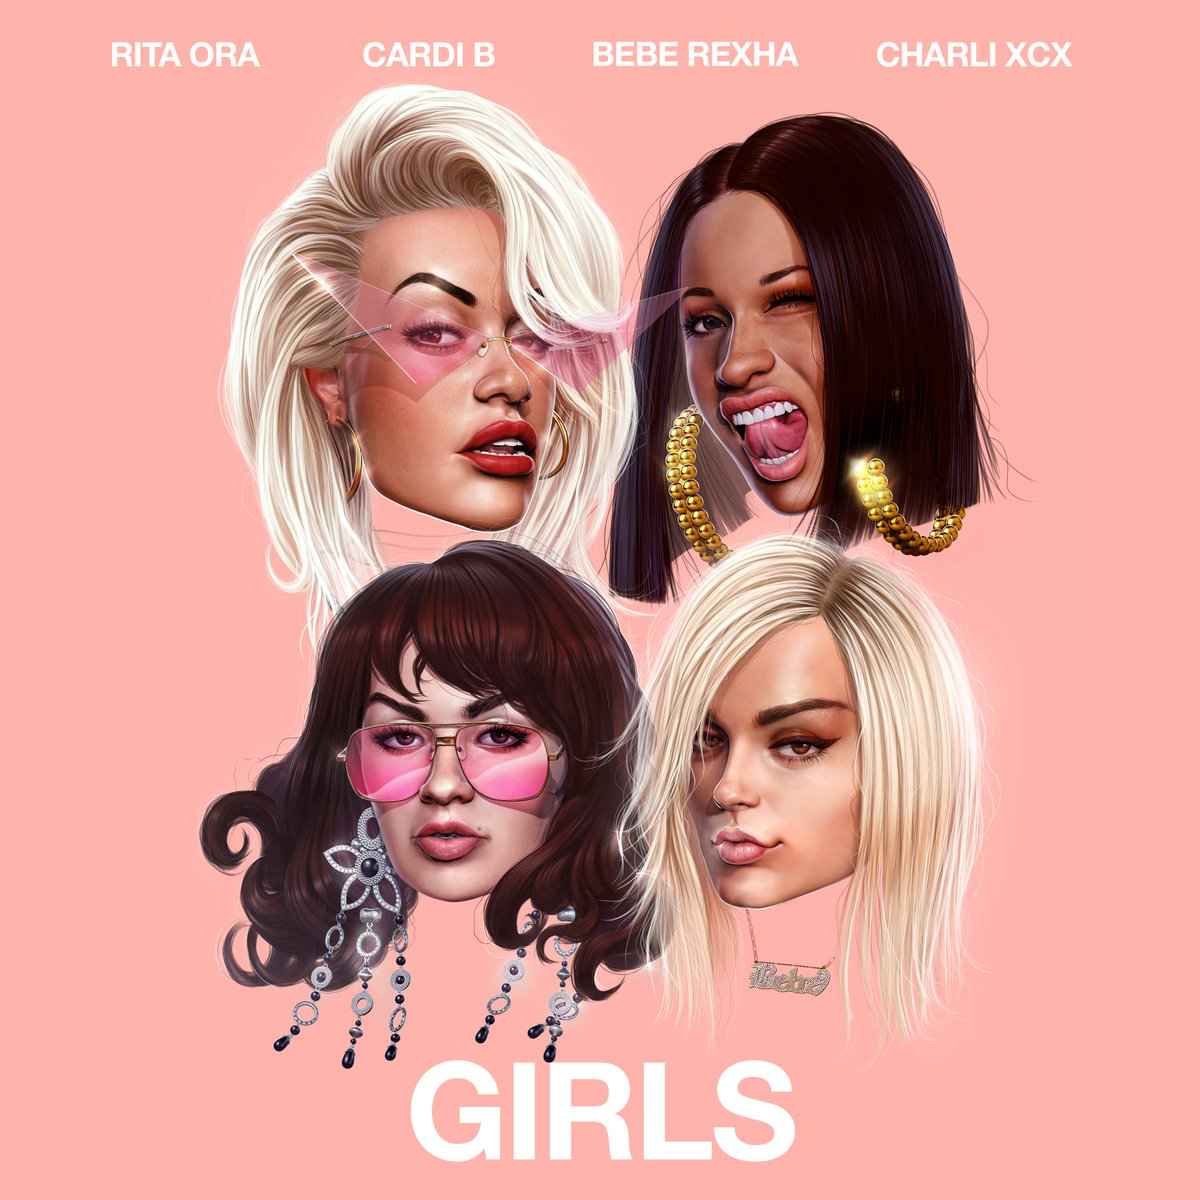 Girls Like U Cardi B Mp3 Download: New Song: Rita Ora, Cardi B, Bebe Rexha, & Charli XCX